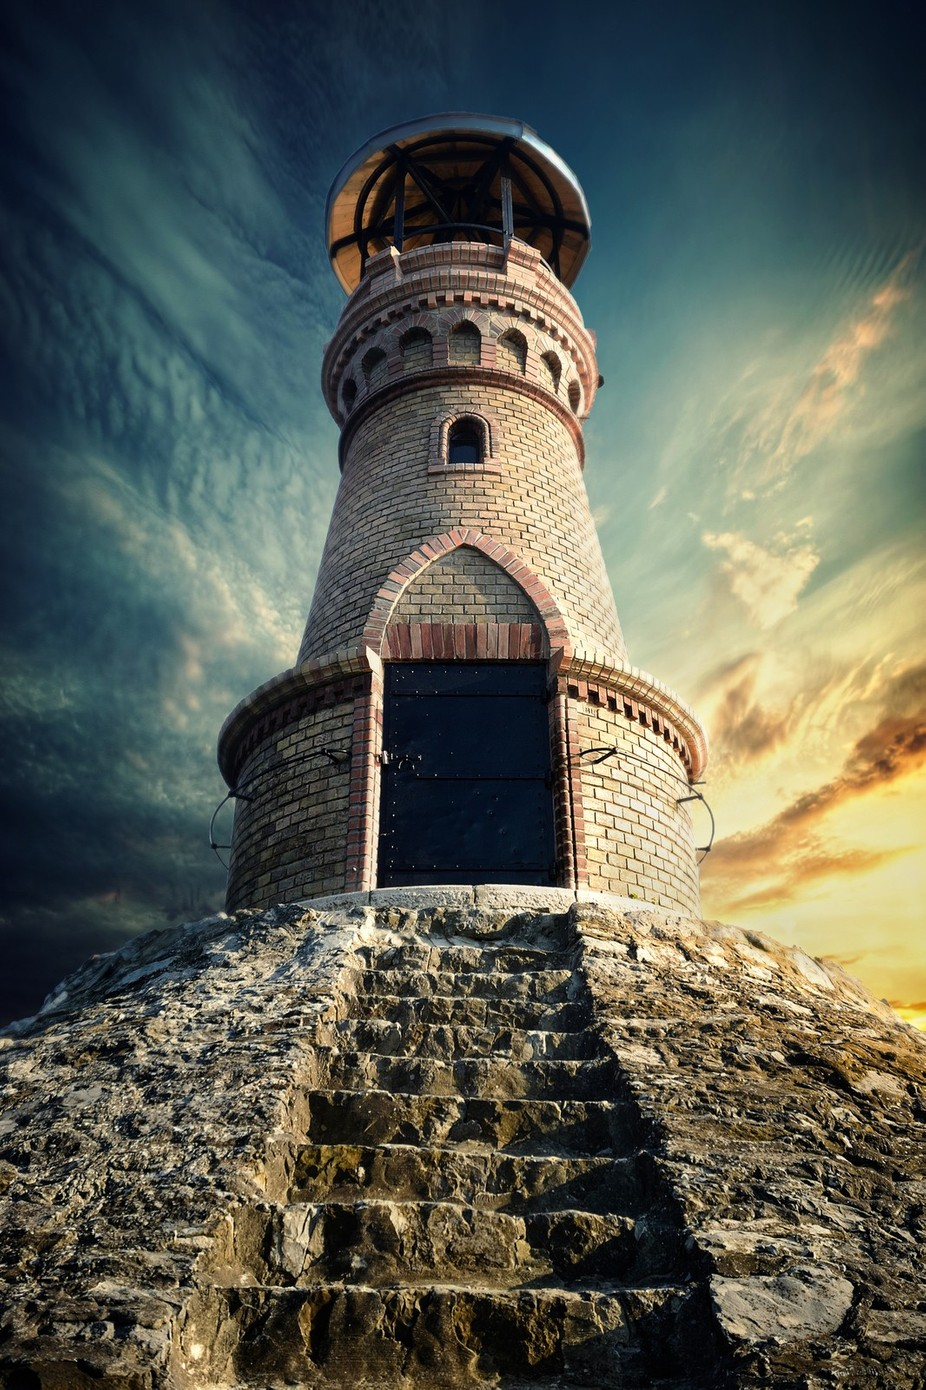 Lighthouse by photos287 - Monthly Pro Vol 24 Photo Contest